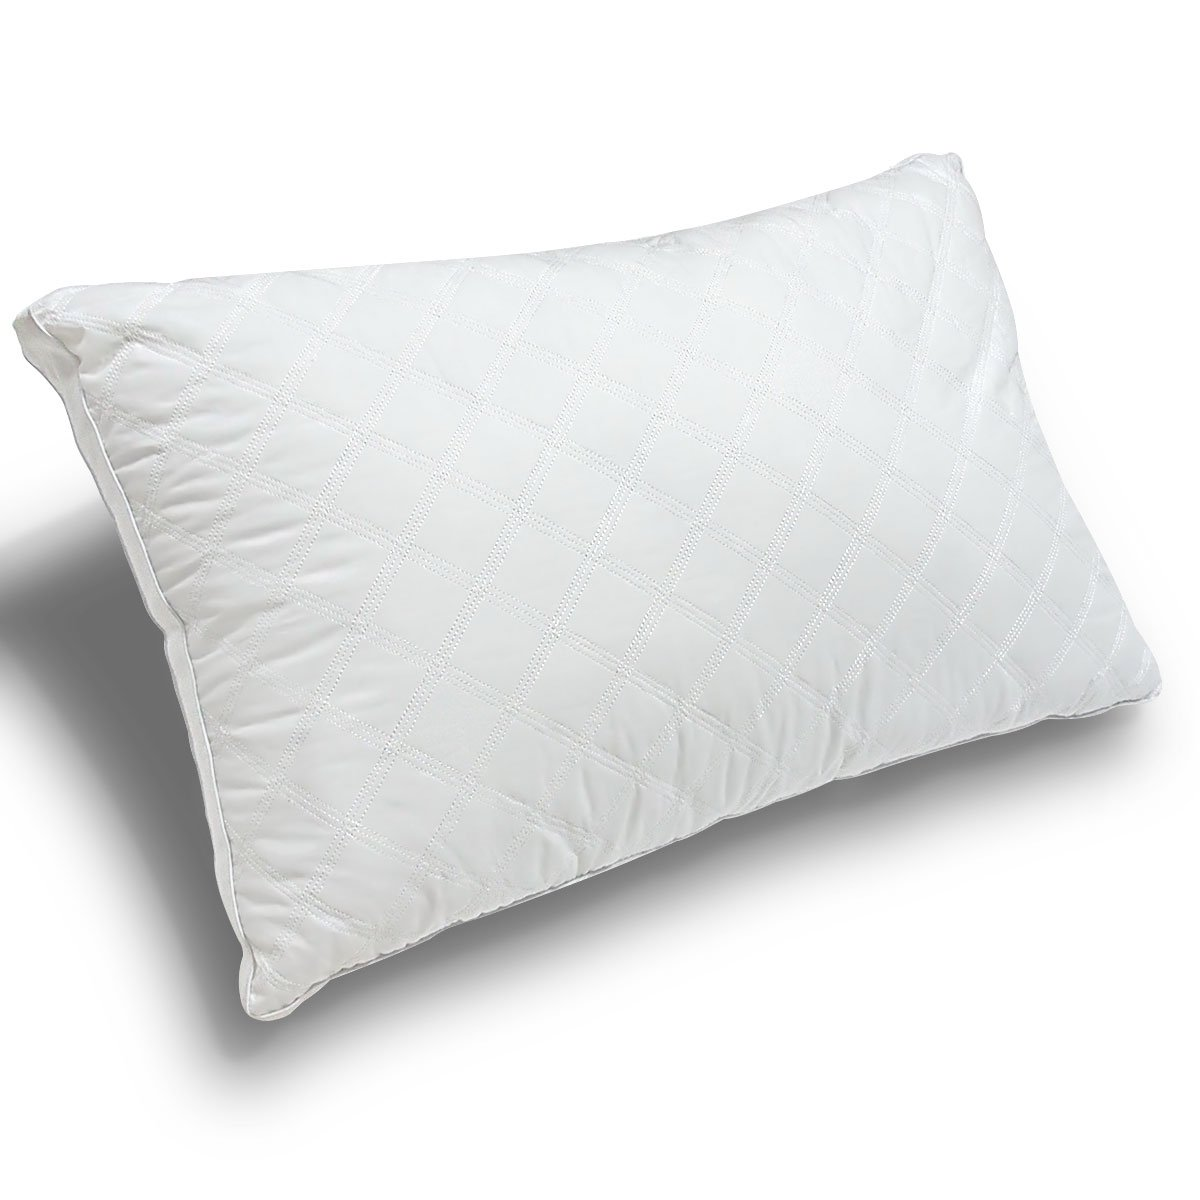 Cotton Bed Pillow,Soft & Comfortable Antibacterial & Anti-mite Pillow-128 individual ''small pillows''support the head, Cotton(20x30x1.5'') ,White,Land City